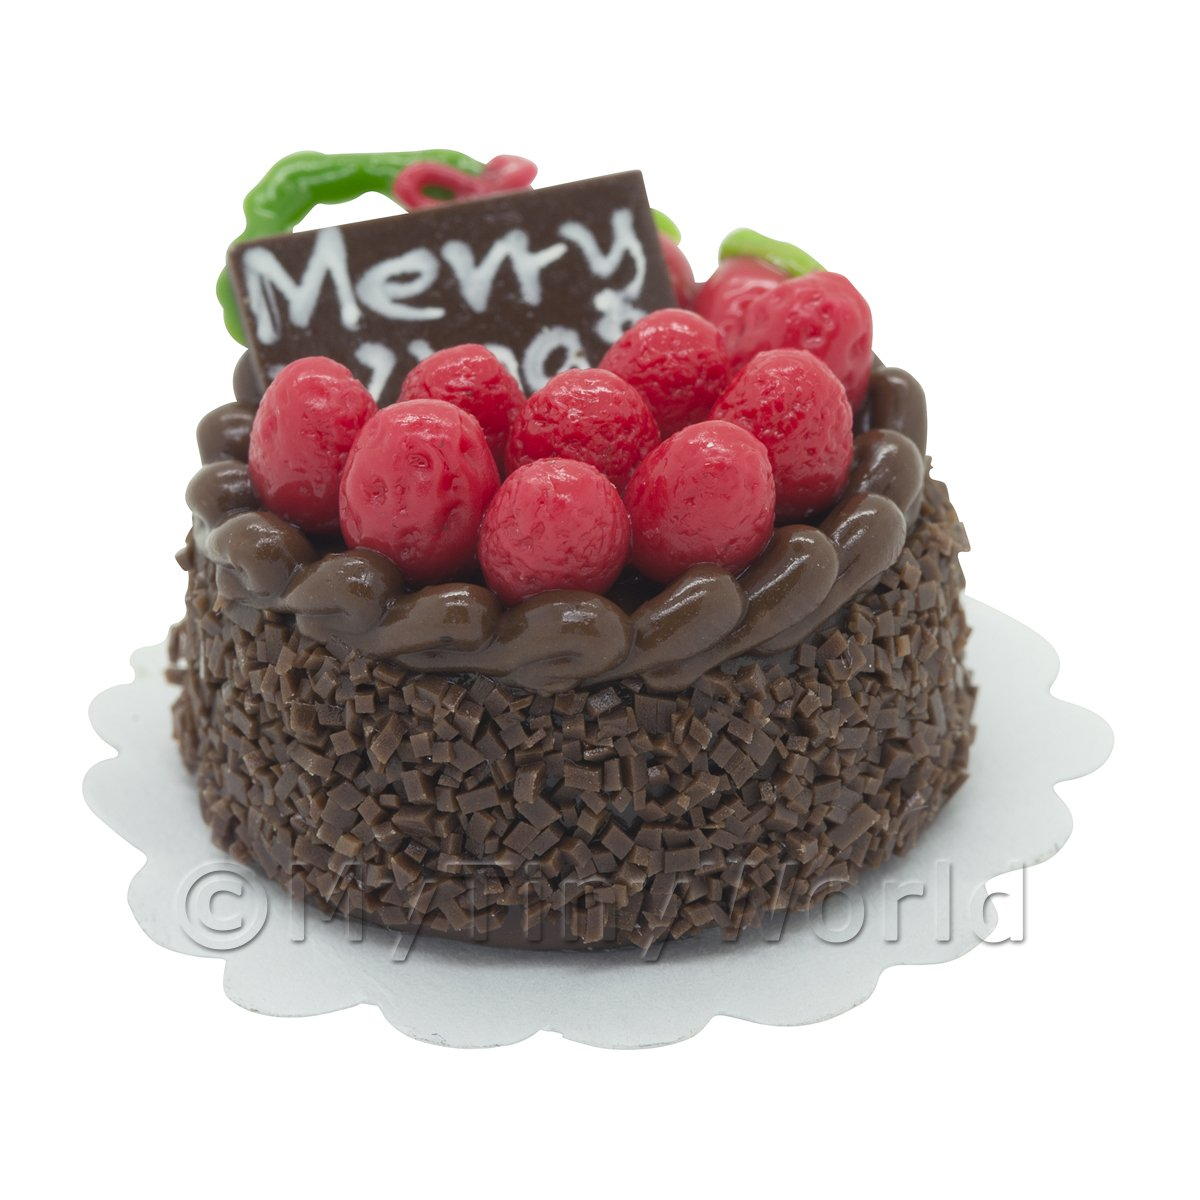 Dolls House Miniature Christmas Cake With Strawberries